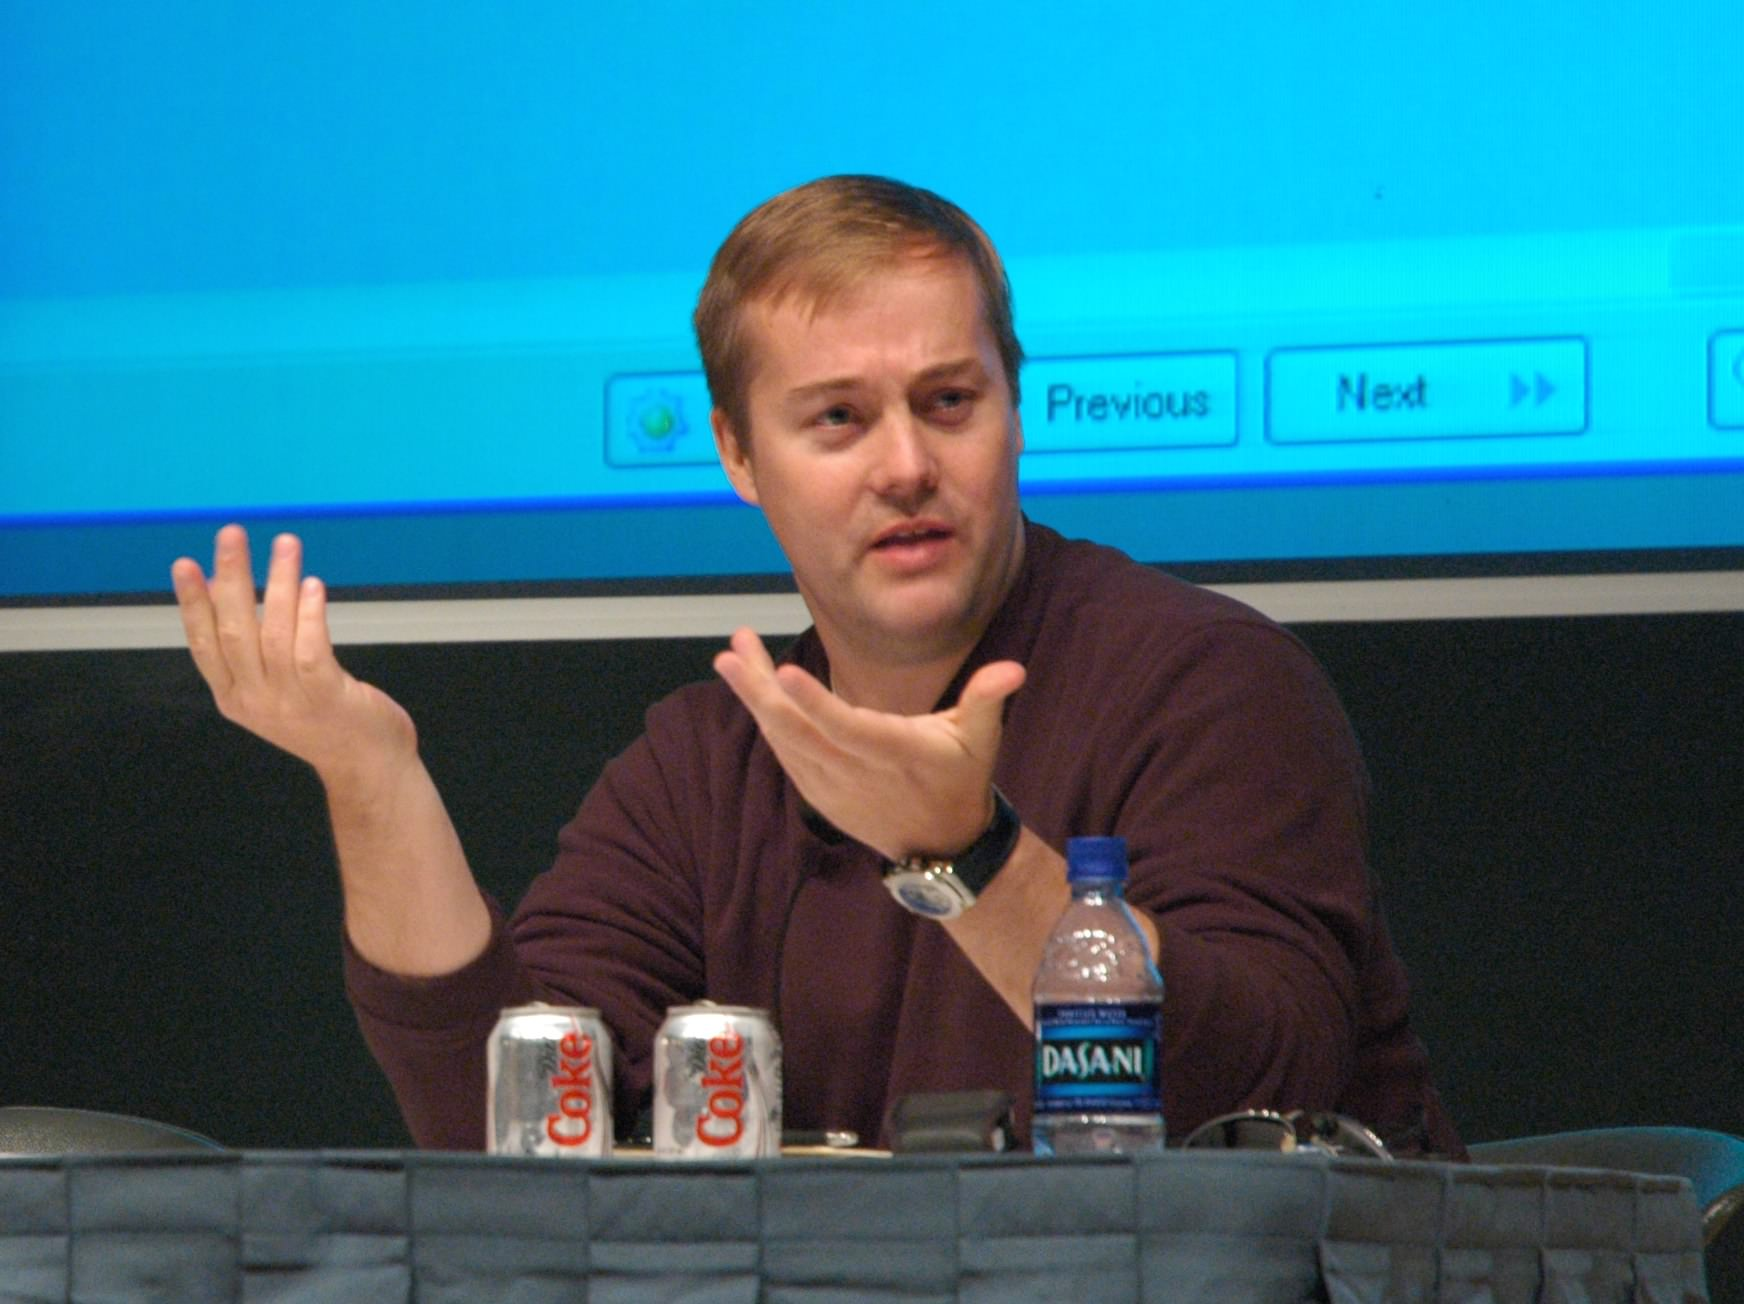 Jason Calacanis: 30 ultimate tips for startups